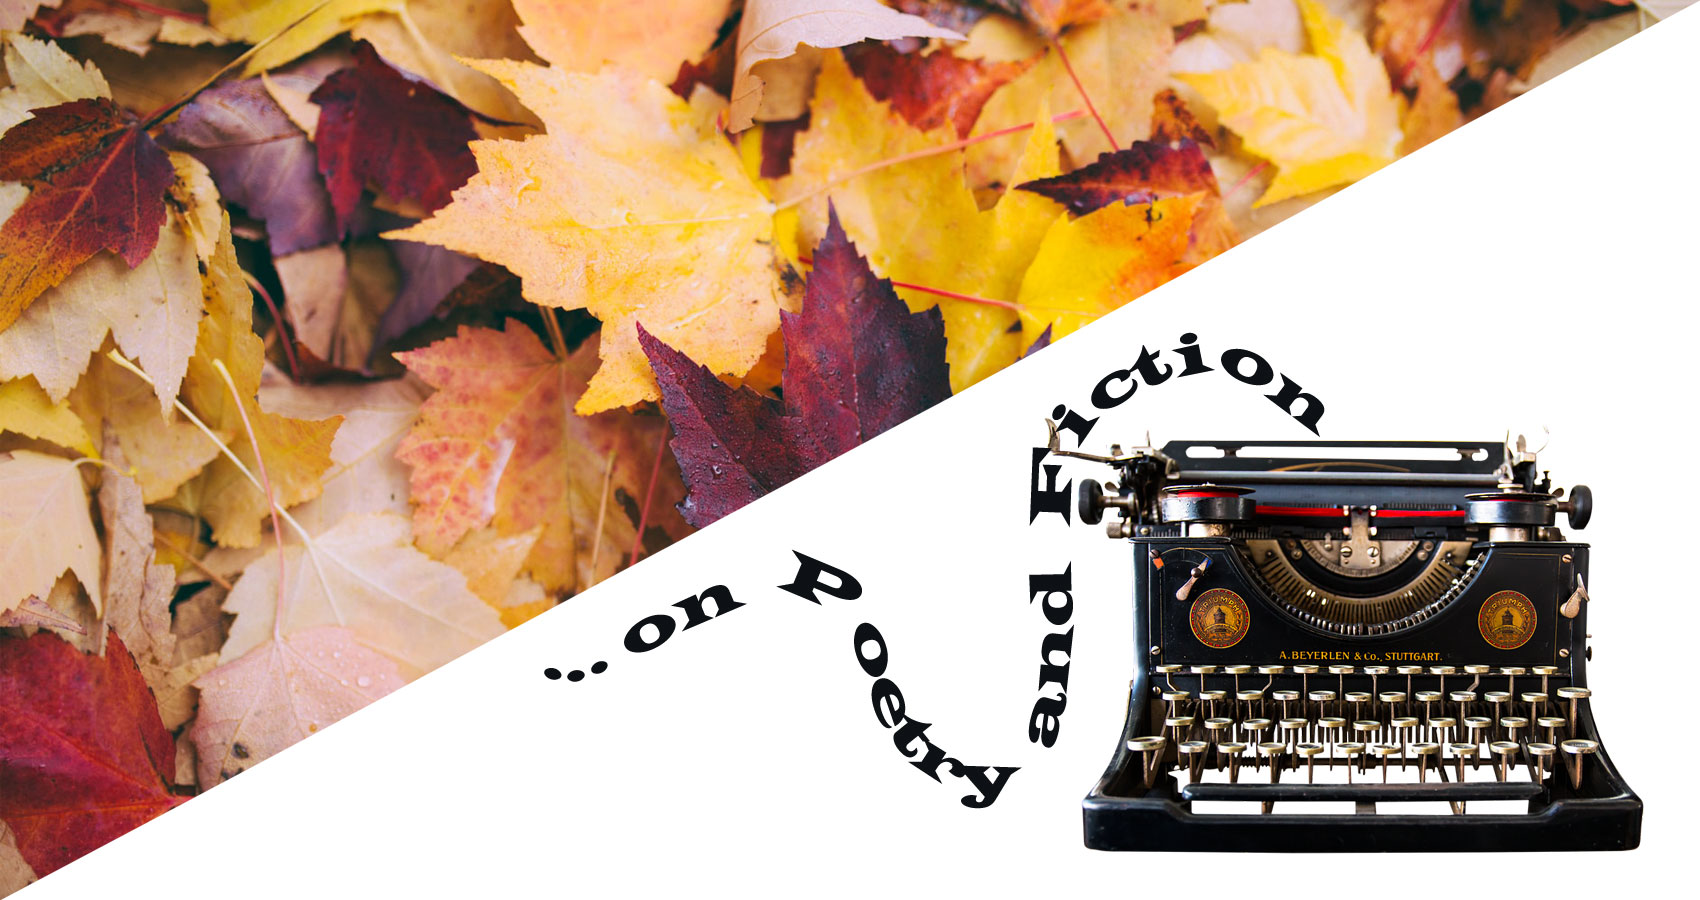 """...on Poetry and Fiction - Just """"One Word"""" Away (""""Autumn""""), editorial by Phyllis P. Colucci at Spillwords.com"""